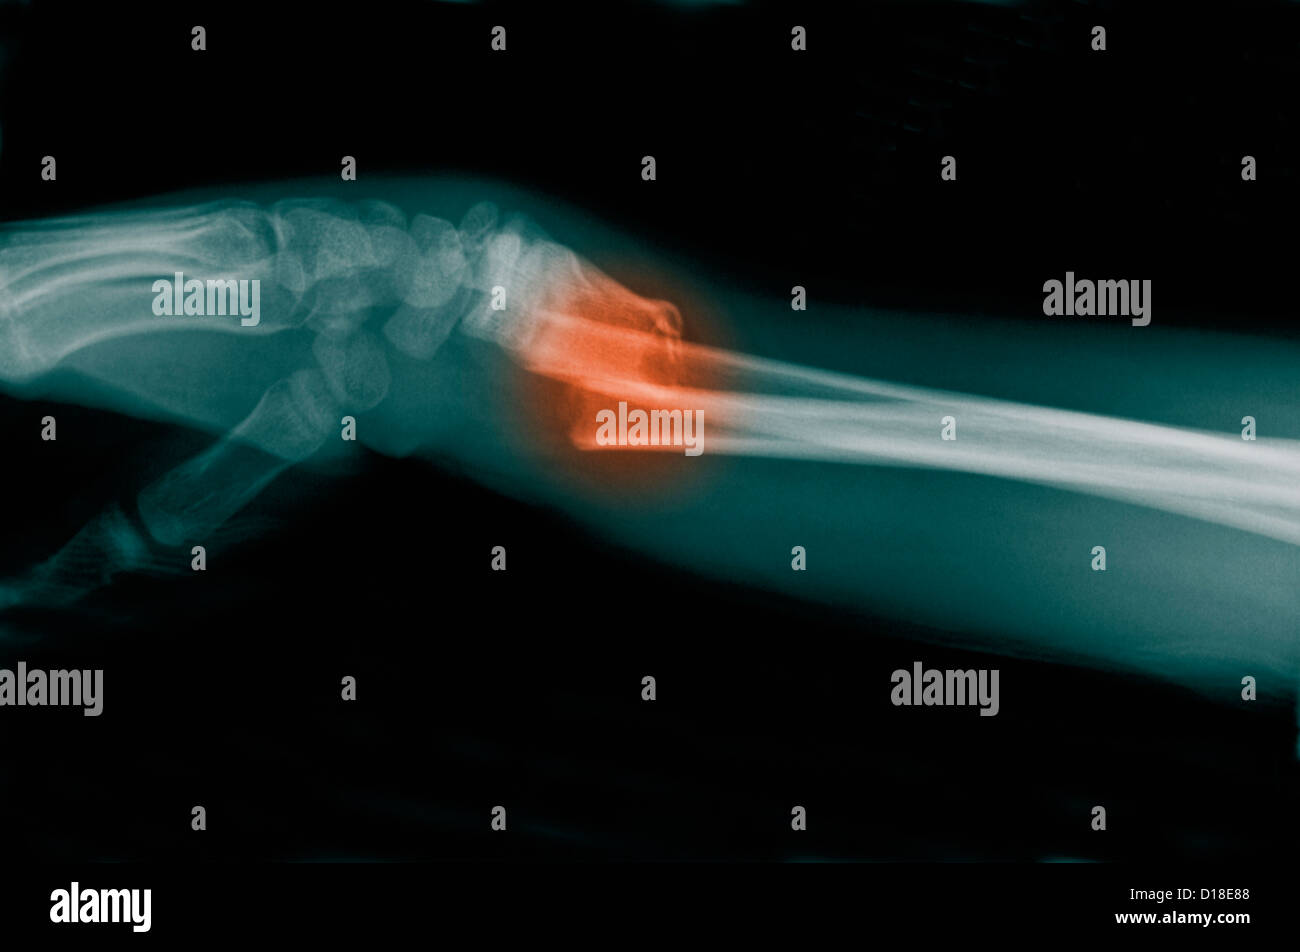 X-ray of a distal forearm fracture - Stock Image